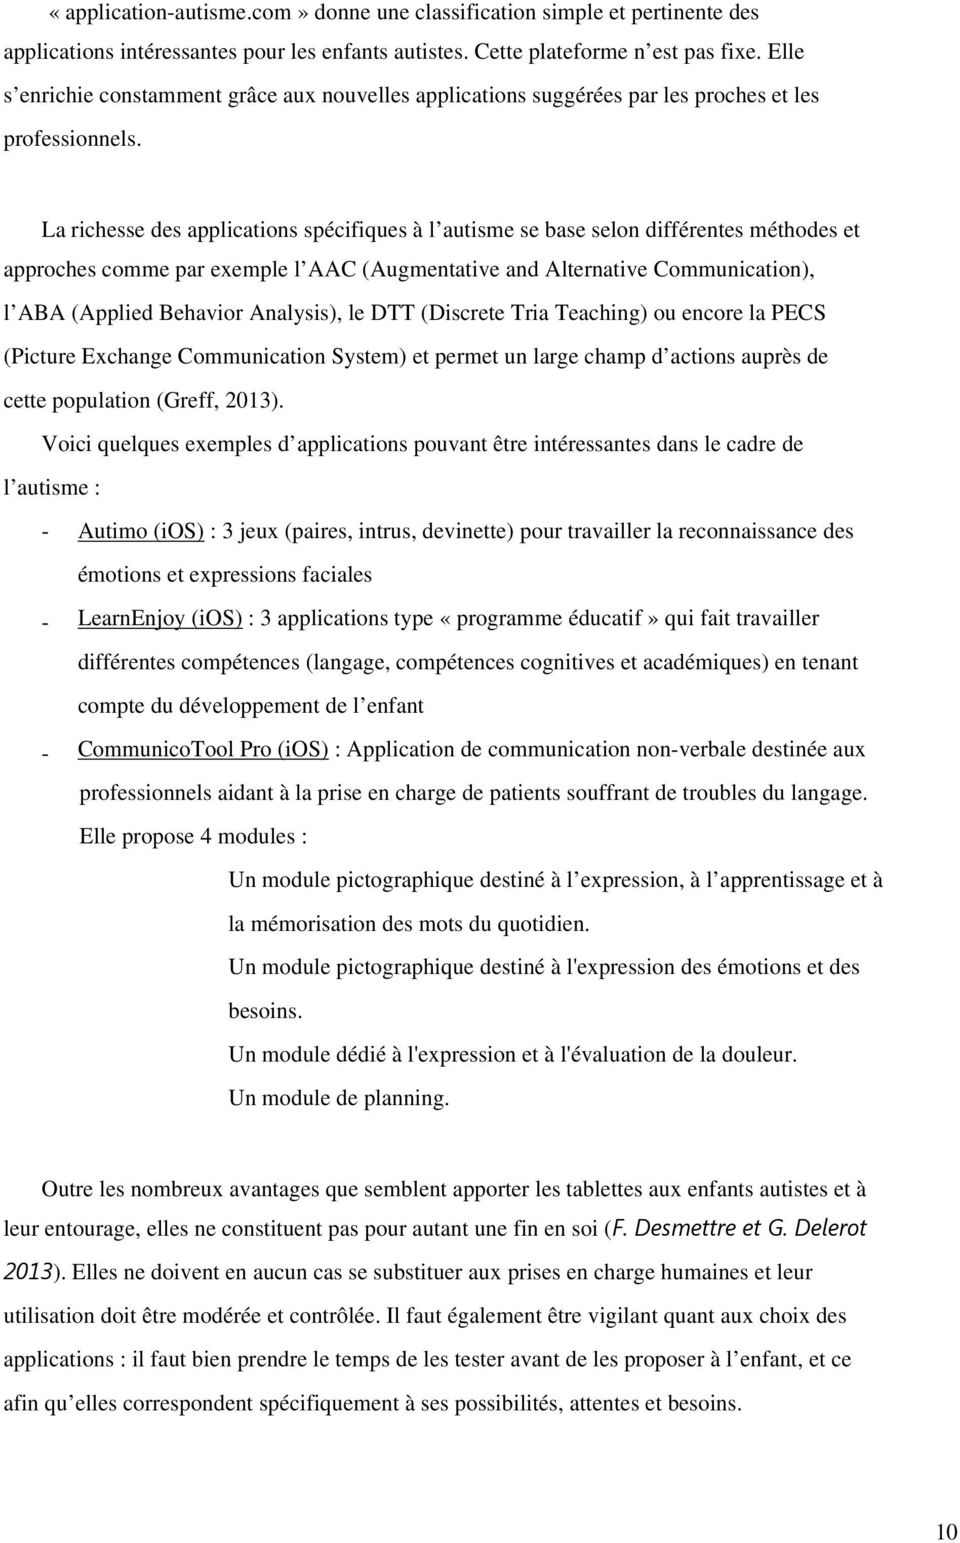 La richesse des applications spécifiques à l autisme se base selon différentes méthodes et approches comme par exemple l AAC (Augmentative and Alternative Communication), l ABA (Applied Behavior